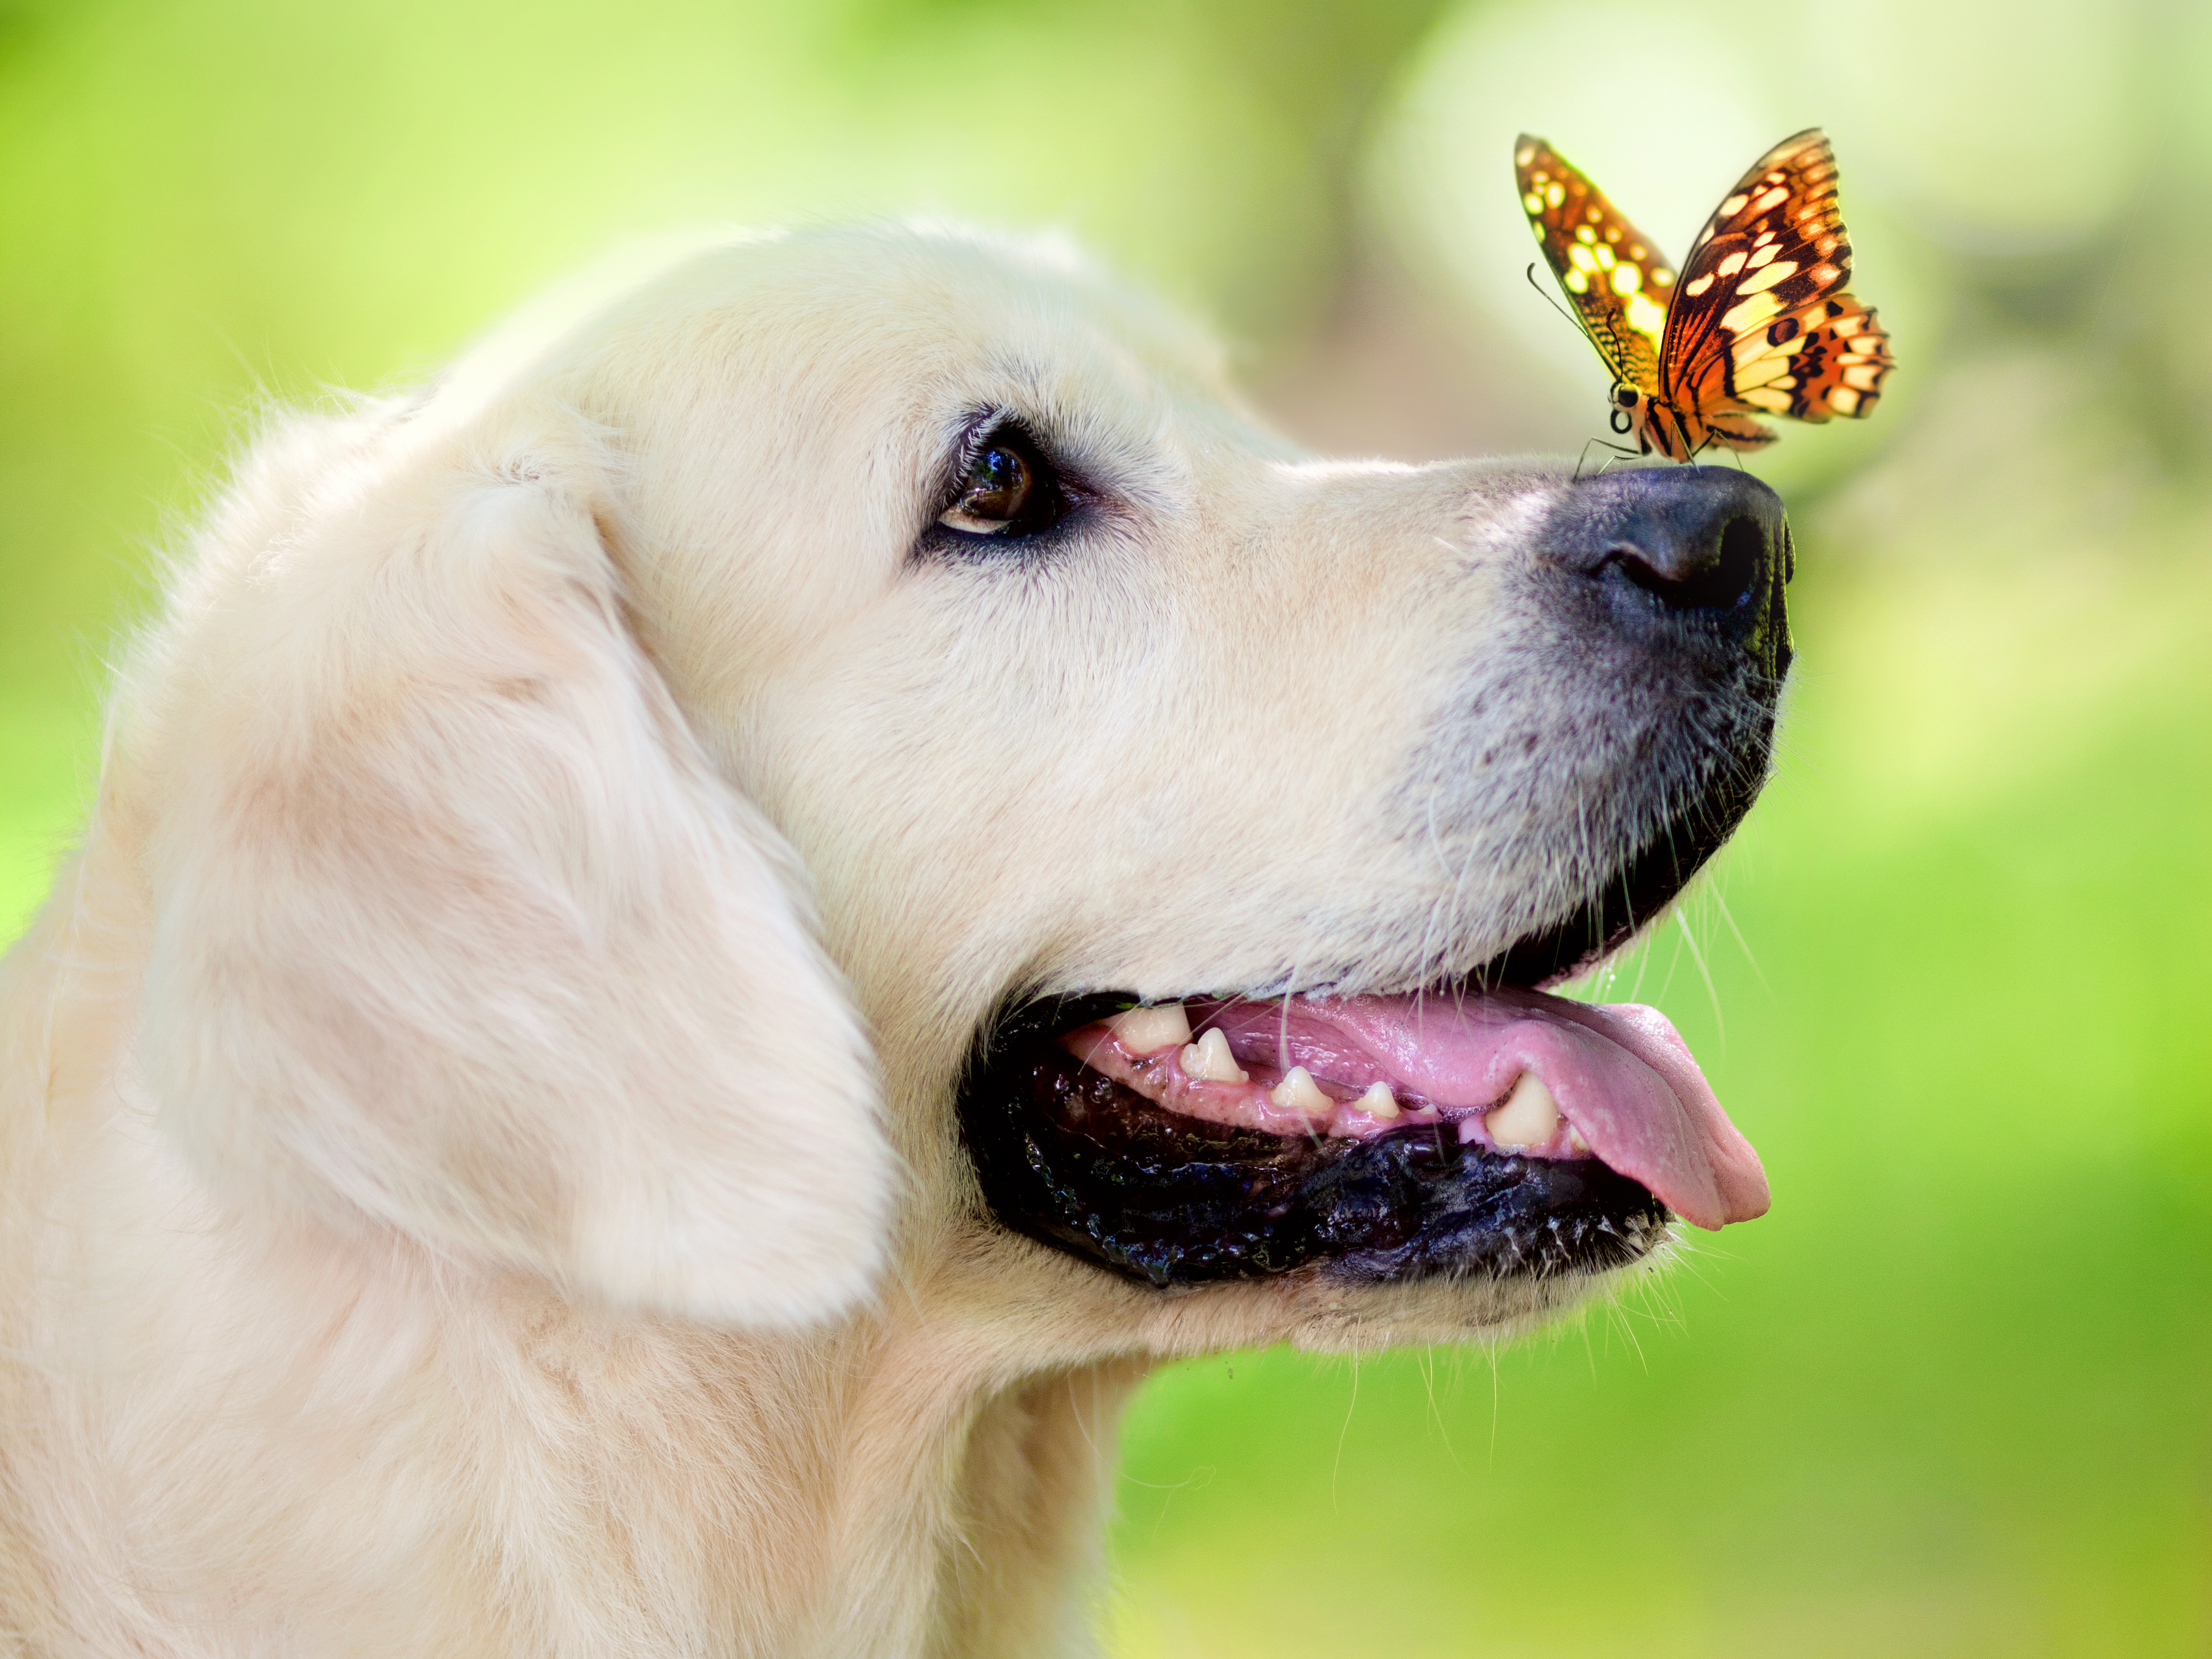 Butterfly On Dogs Nose Hd Wallpaper Background Image 3744x2808